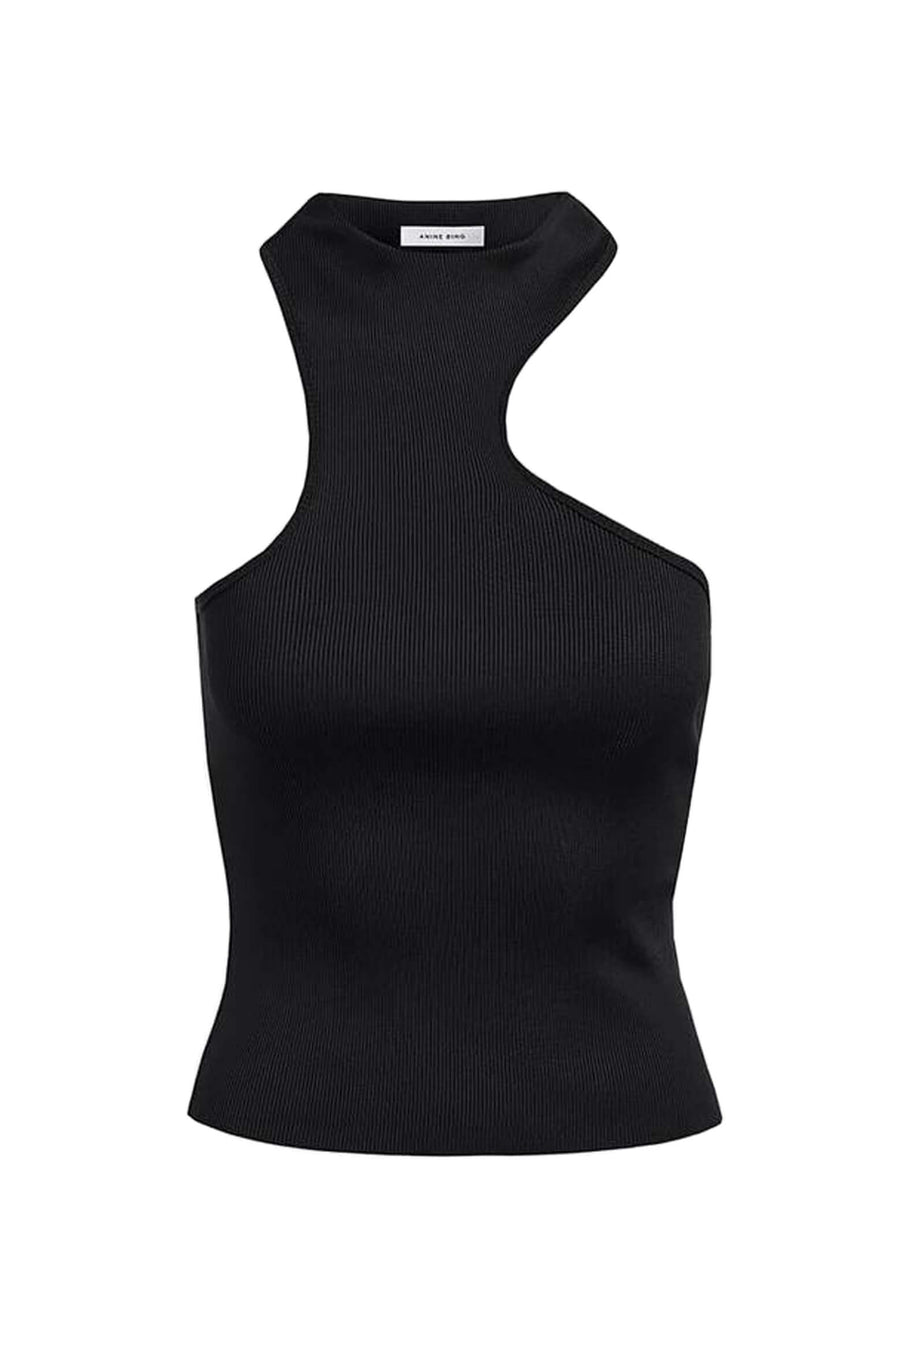 Anine Bing Lesley Tank in Black from The New Trend